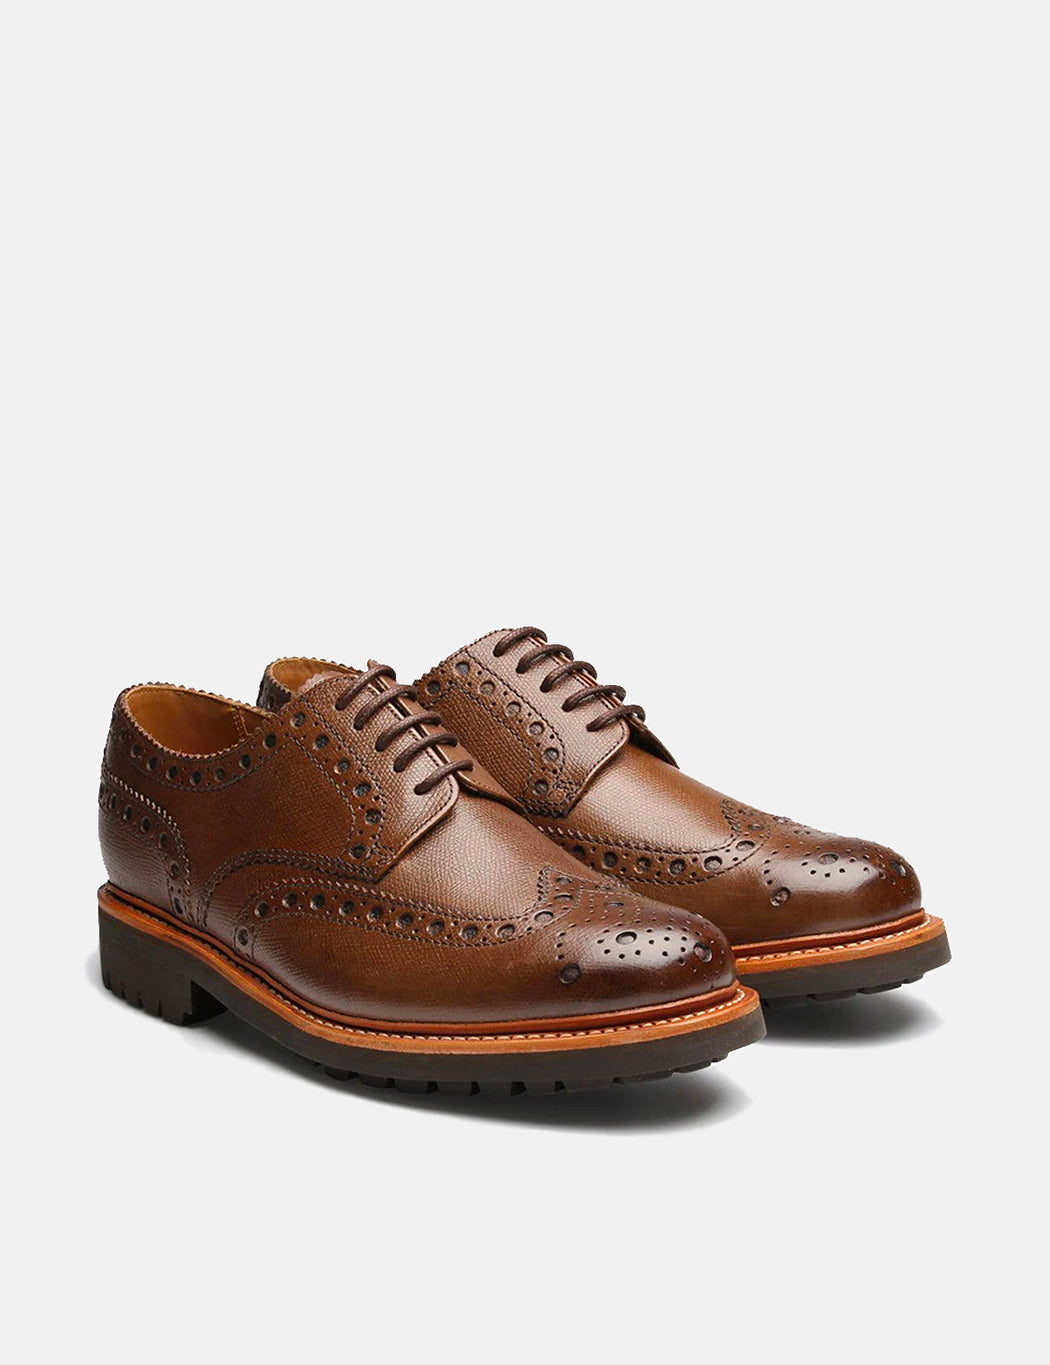 Grenson Archie Commando Sole Brogue Shoes - Brown - Dark Brown / 9 Size down 1